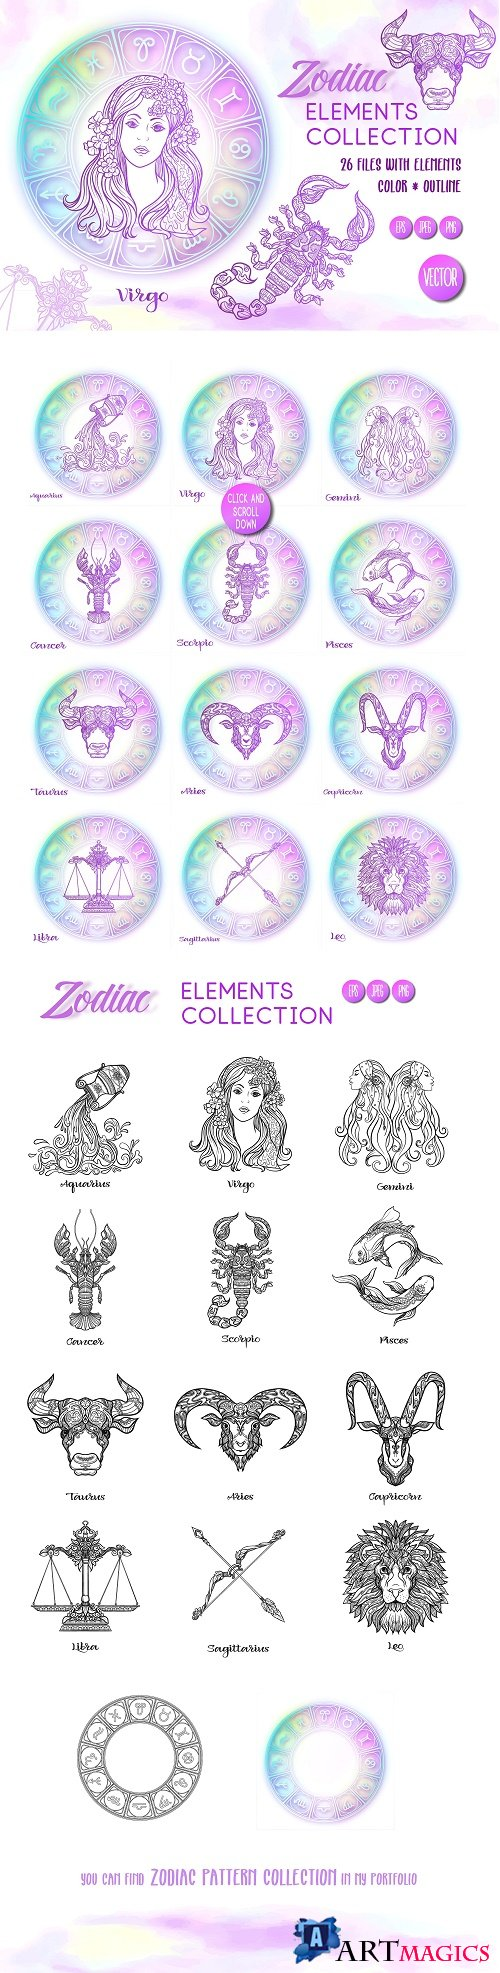 Zodiac Elements - Colored & Outline 2443993